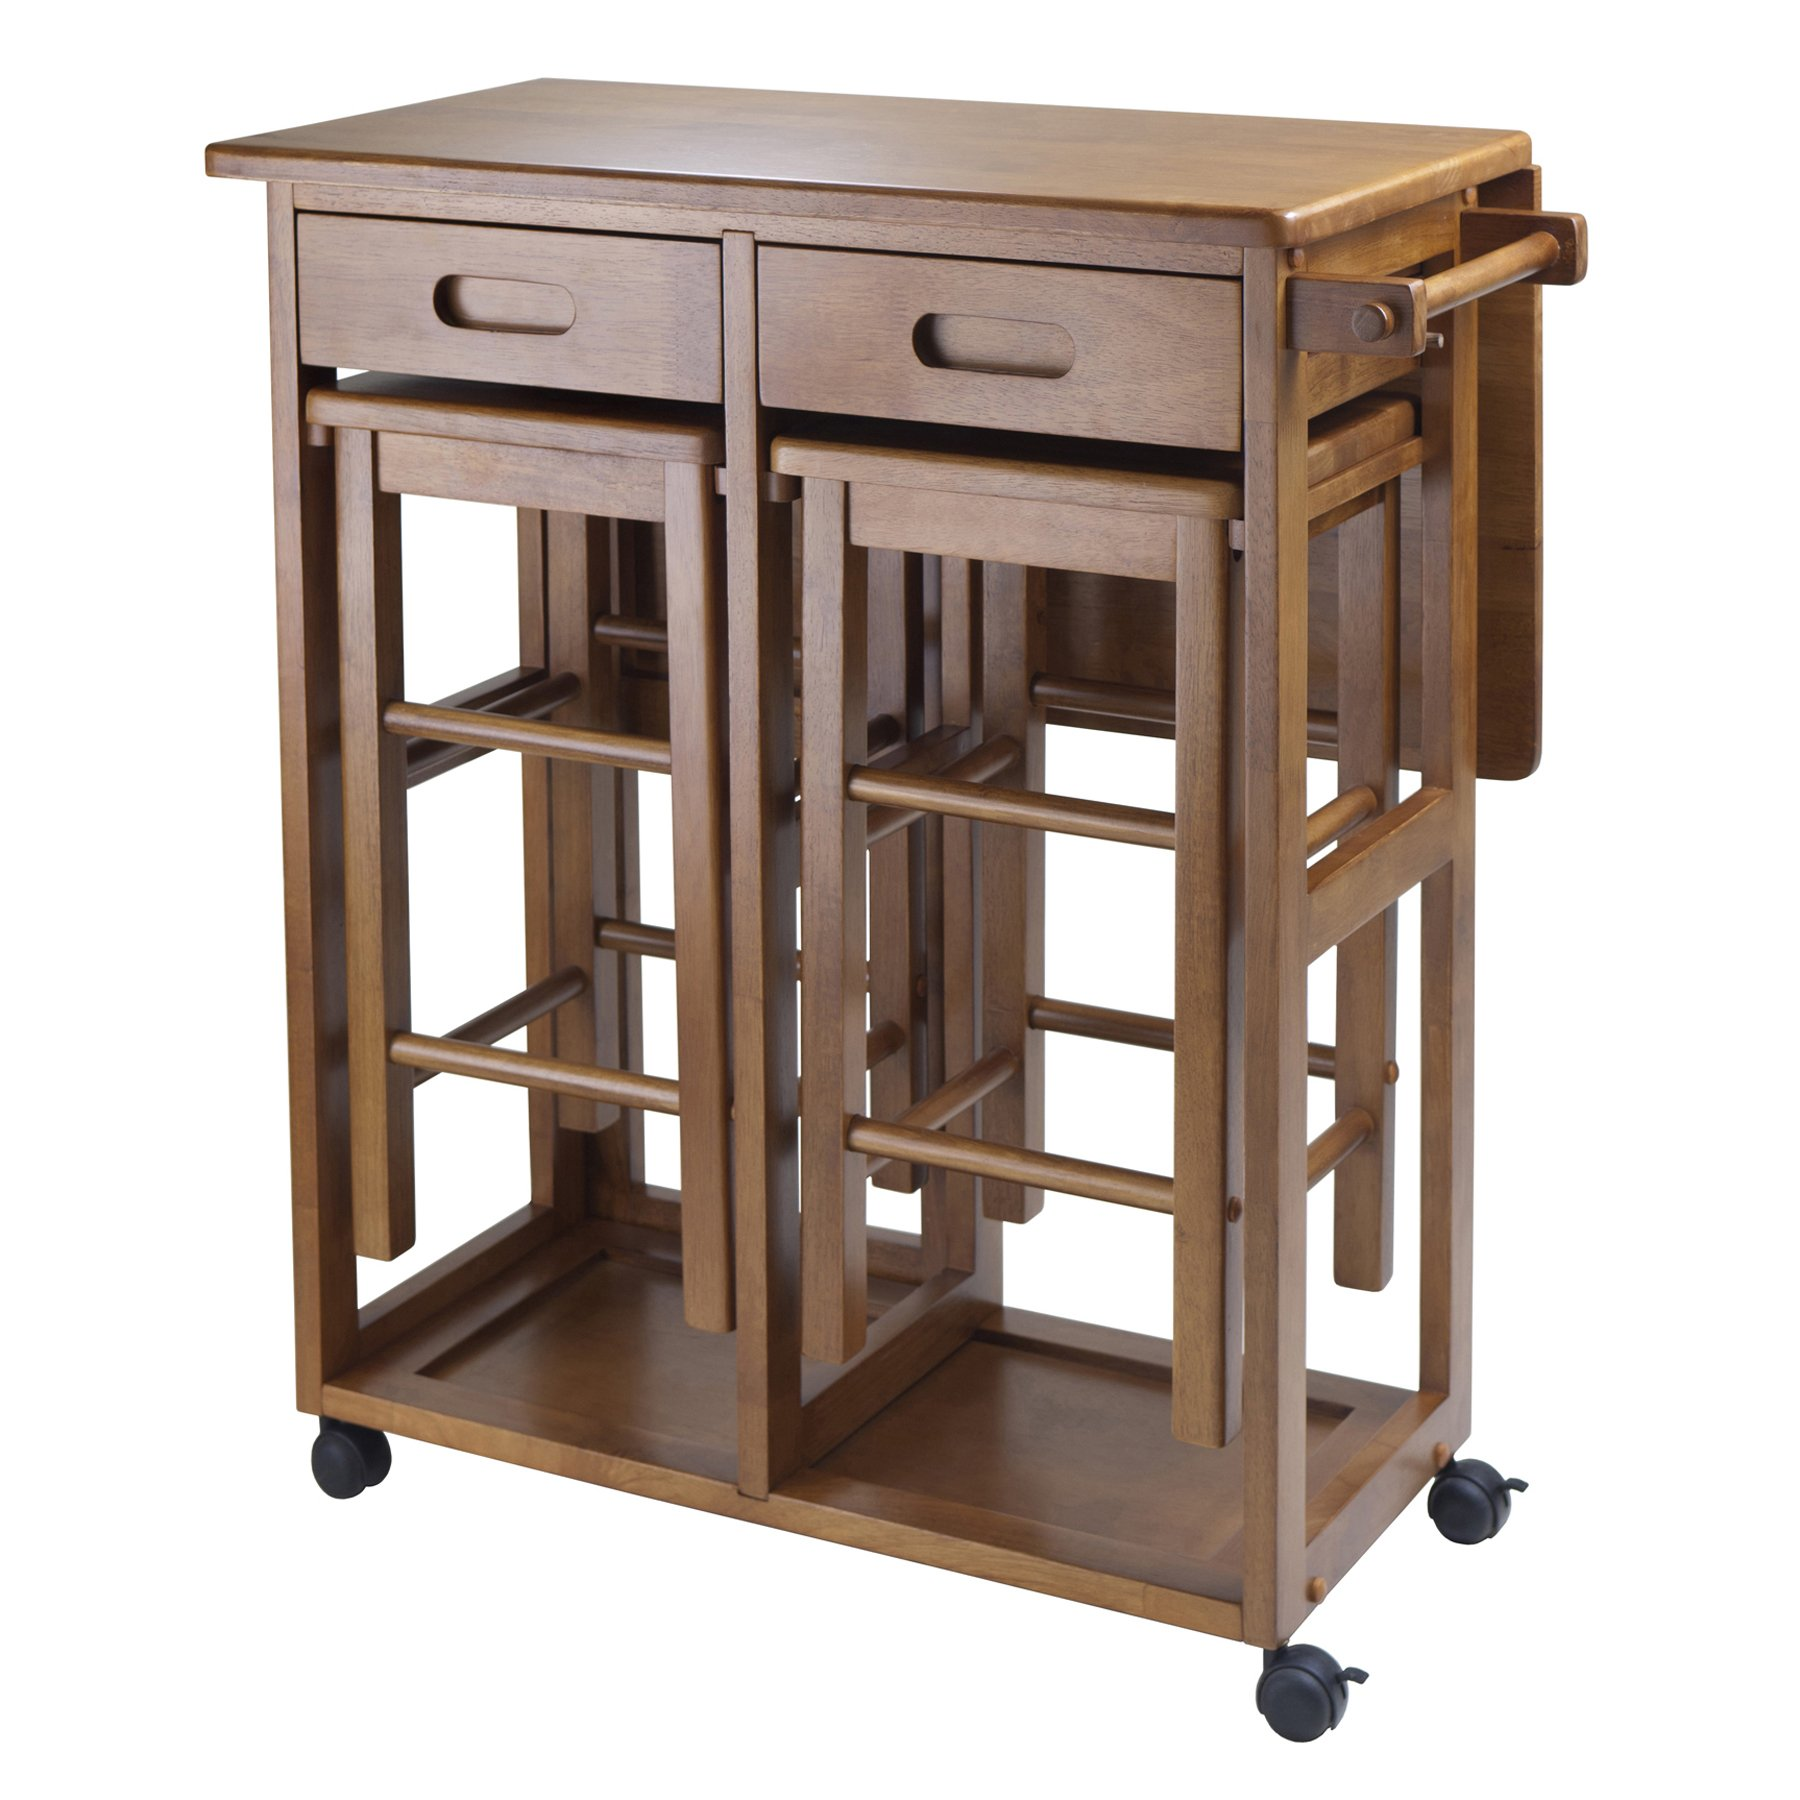 Winsome 39330 Suzanne Kitchen, Square, Teak by Winsome